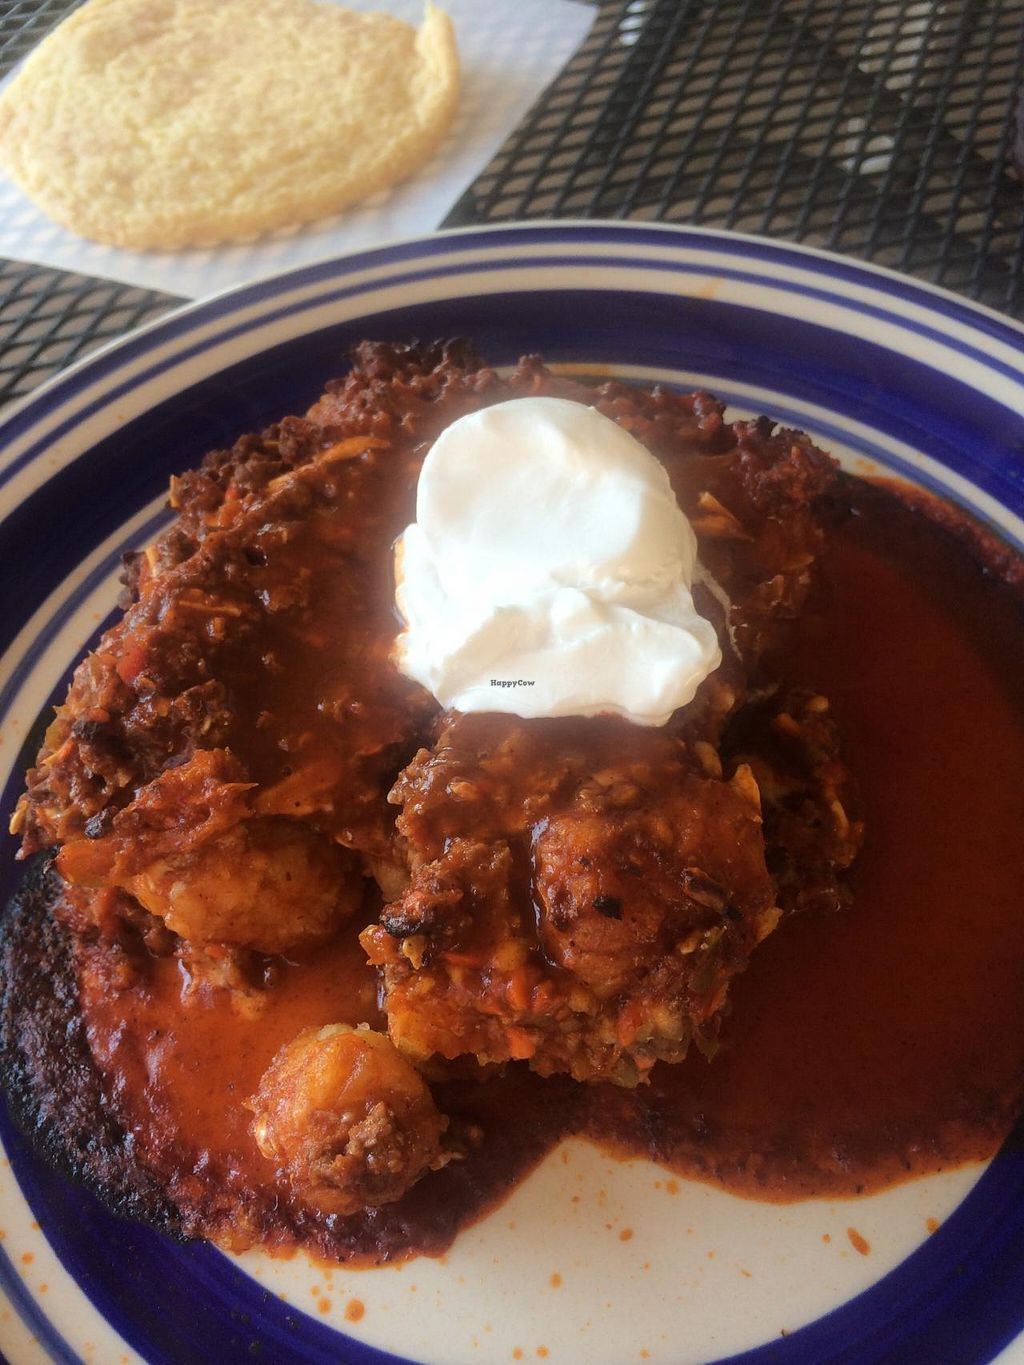 "Photo of Grounds For Coffee  by <a href=""/members/profile/Meggie%20and%20Ben"">Meggie and Ben</a> <br/>'Sloppy tots' - Tater tots with sloppy joe filling on top. Surprisingly delicious!  <br/> September 27, 2014  - <a href='/contact/abuse/image/34969/81329'>Report</a>"